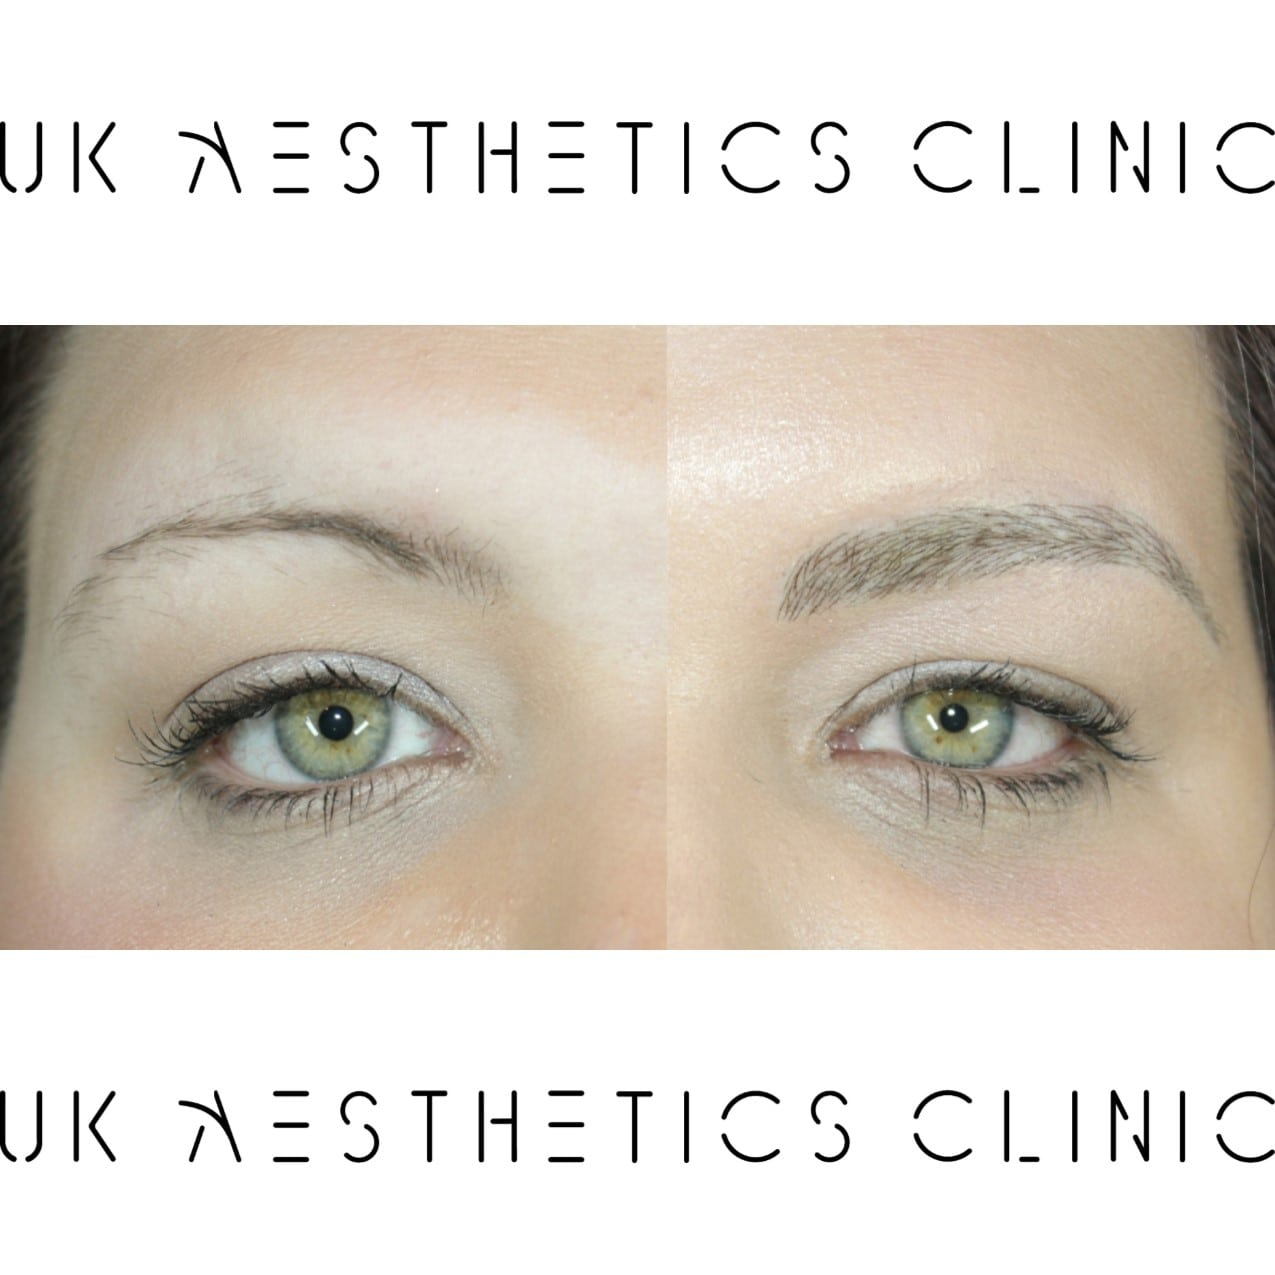 microblading-treatment-uk-aesthetics-clinic-Carly